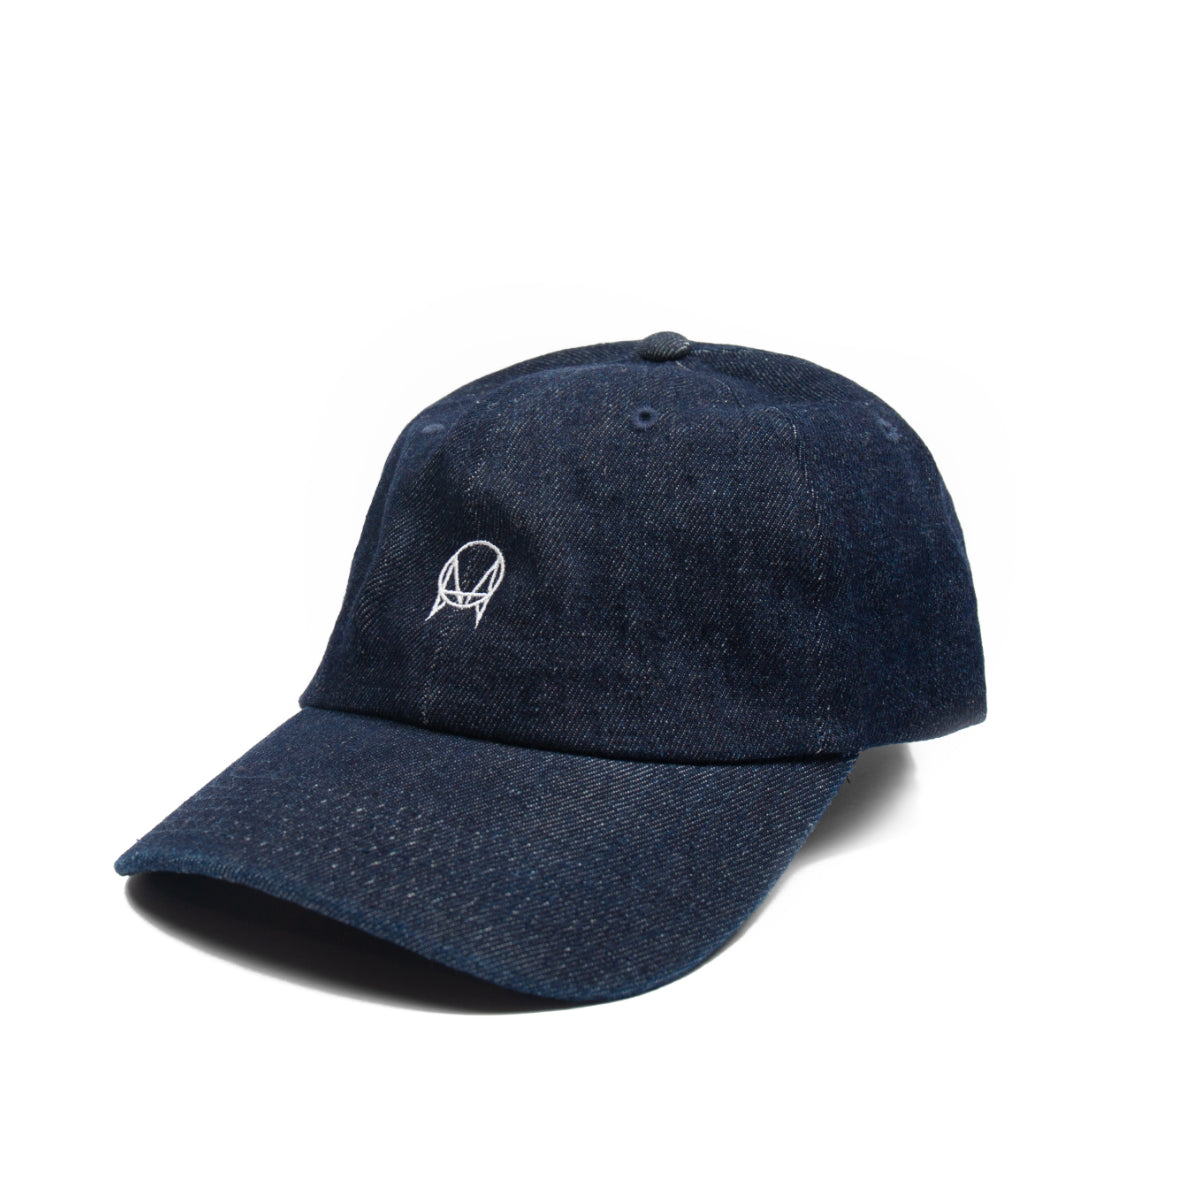 OWSLA LOGO DENIM DAD HAT - DARK INDIGO